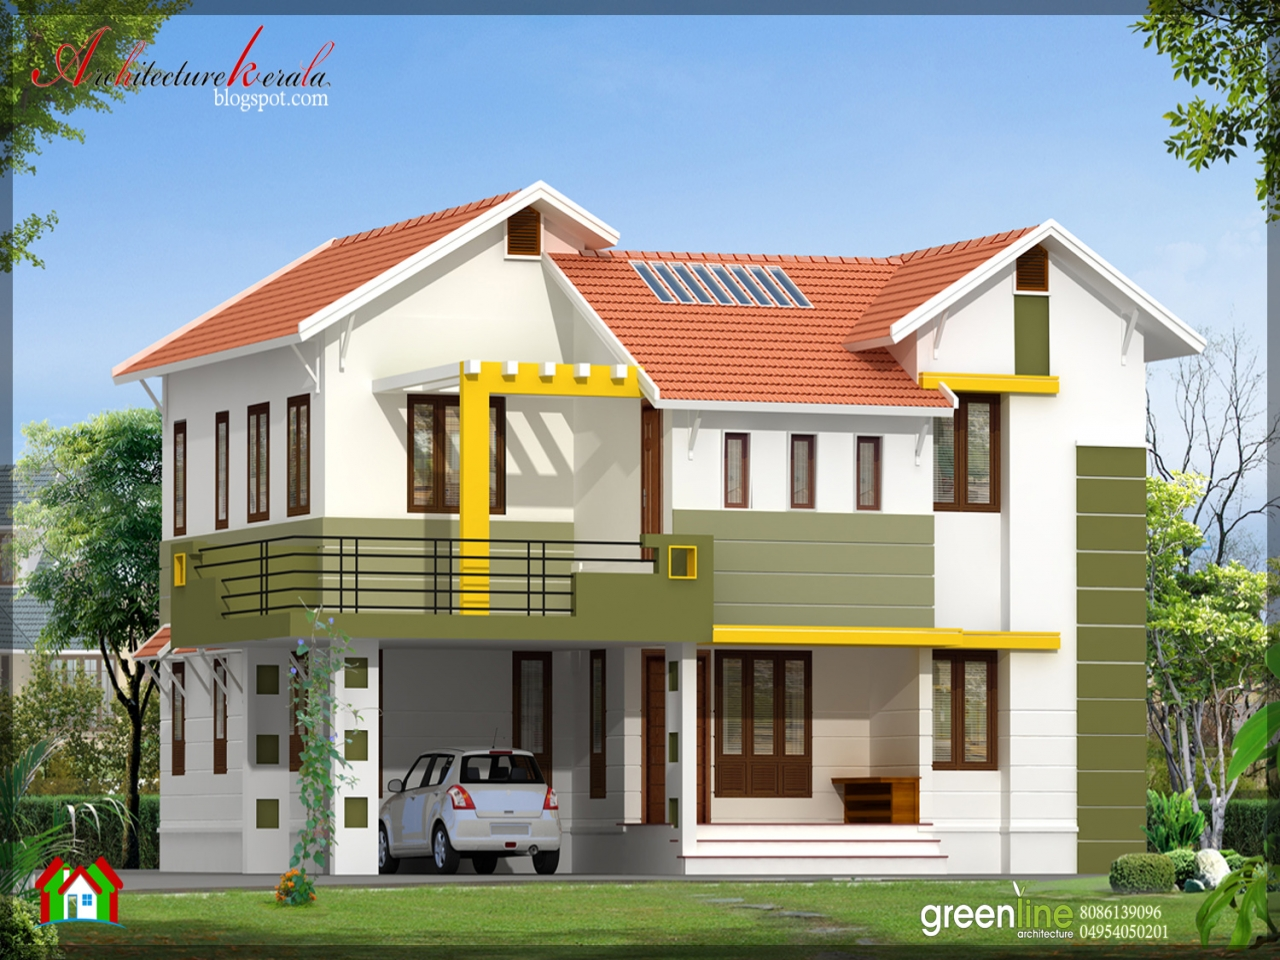 Simple modern house designs simple house design in india Simple house designs indian style